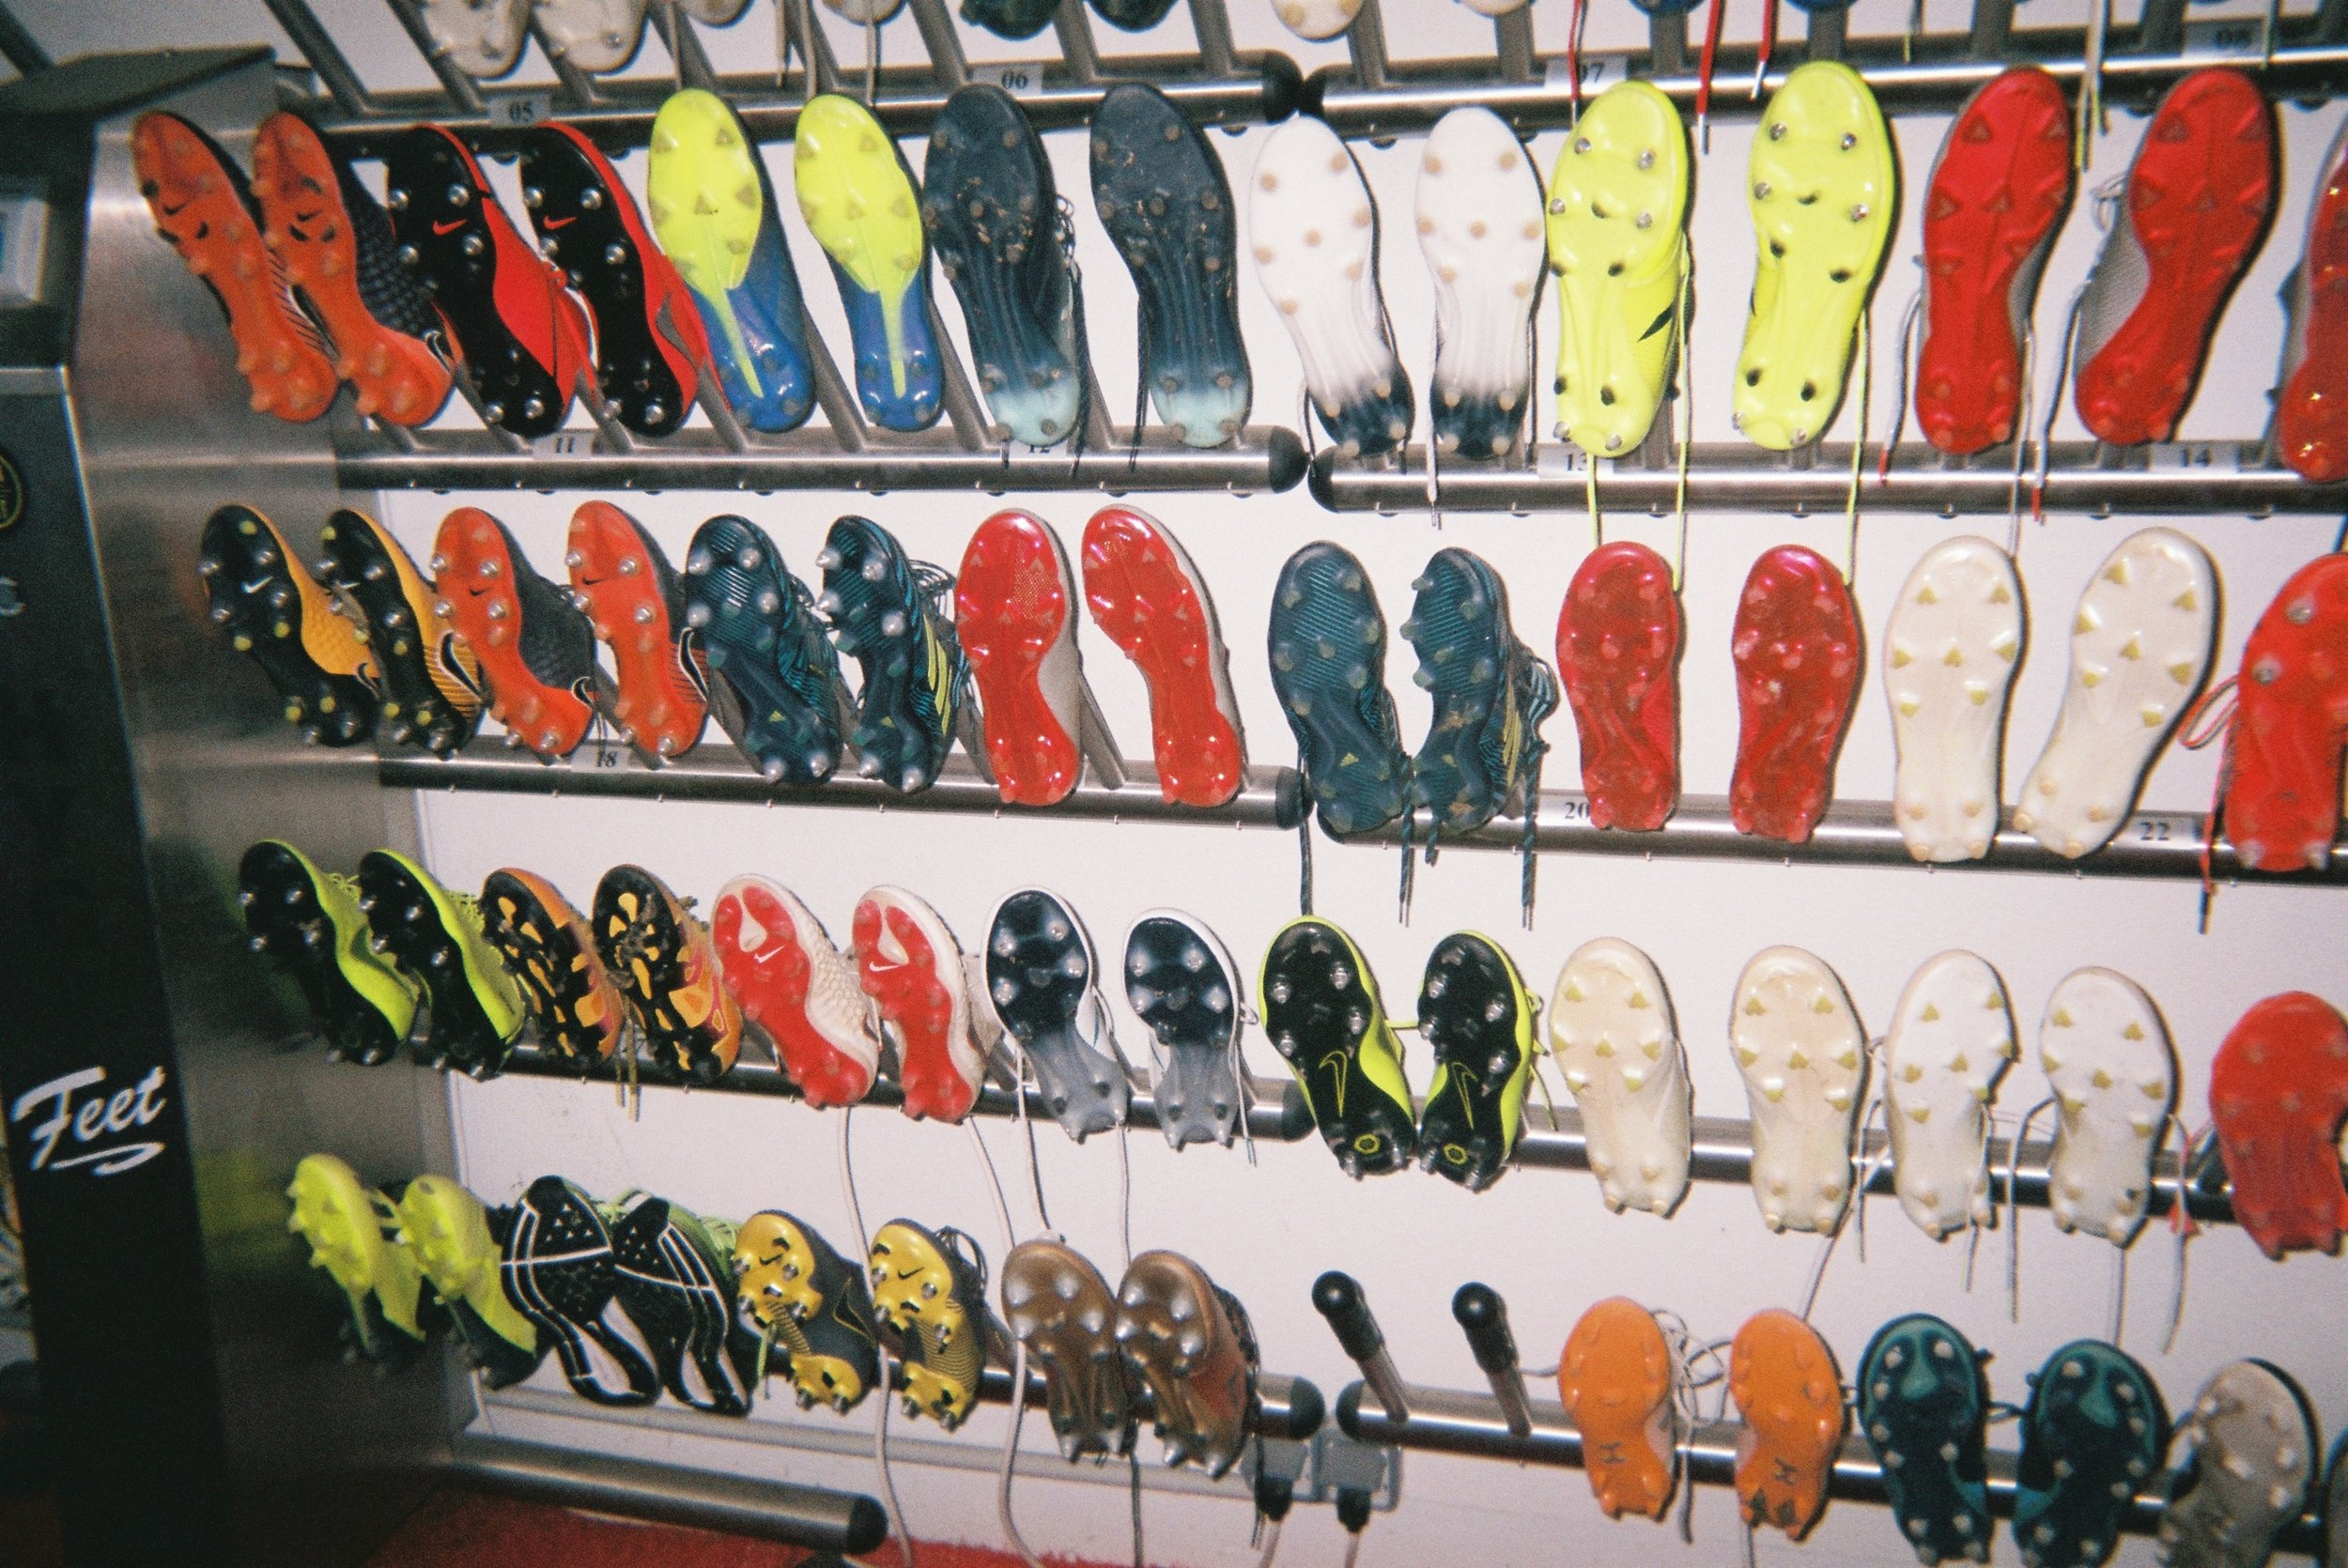 Just a plain old boot rack, where player's boots are left to dry or to try and not smell so bad.